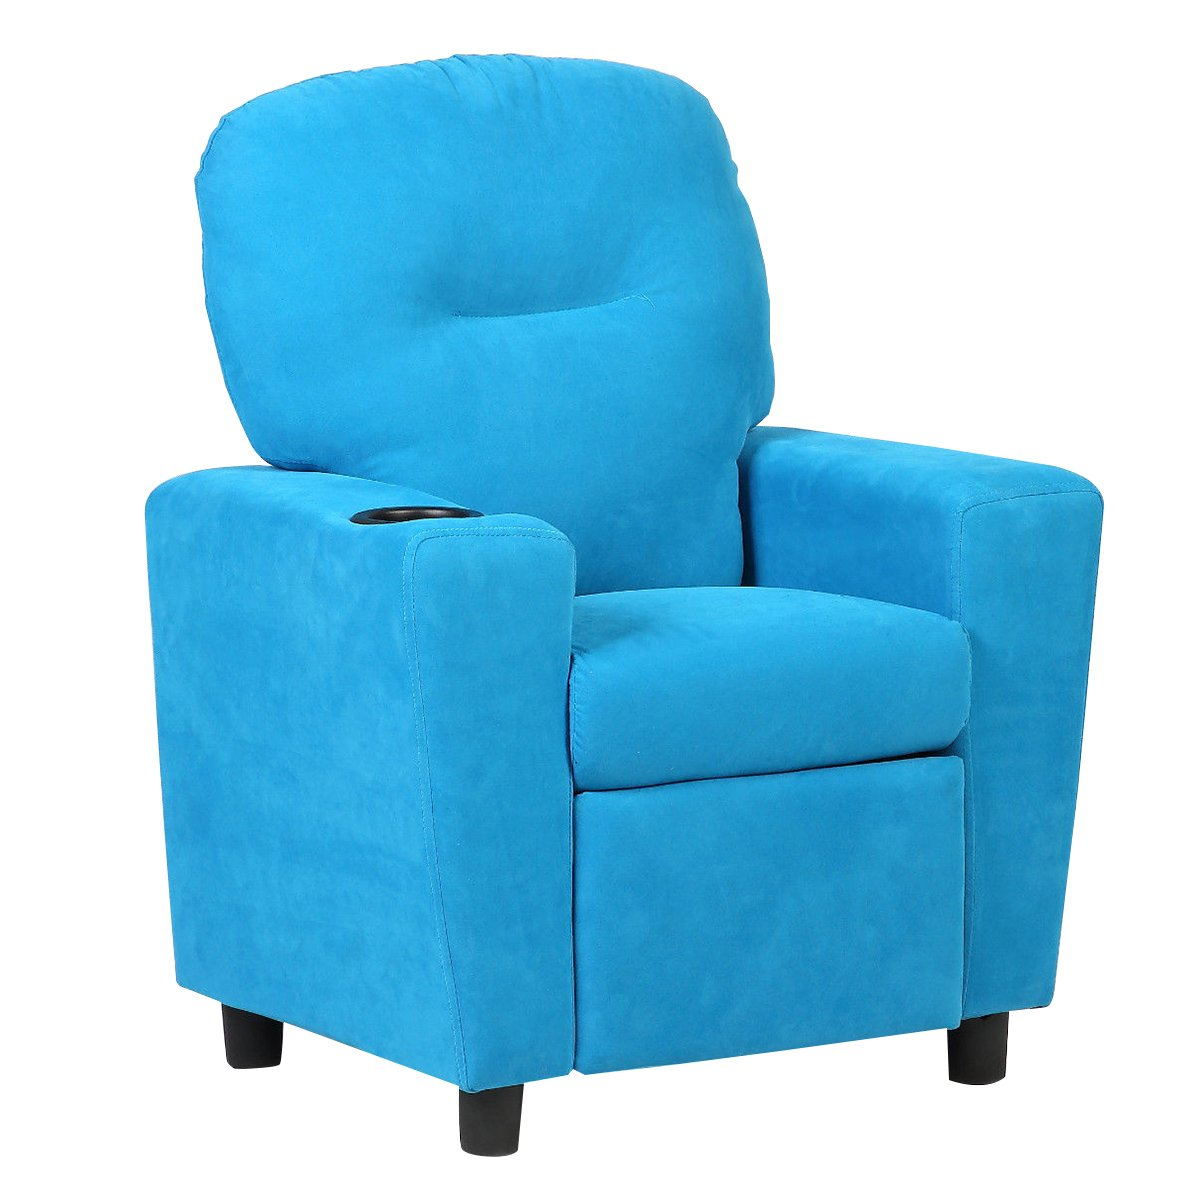 Costzon Kids Recliner Chair Children Reclining Sofa Seat Couch w/Cup Holder (Blue)